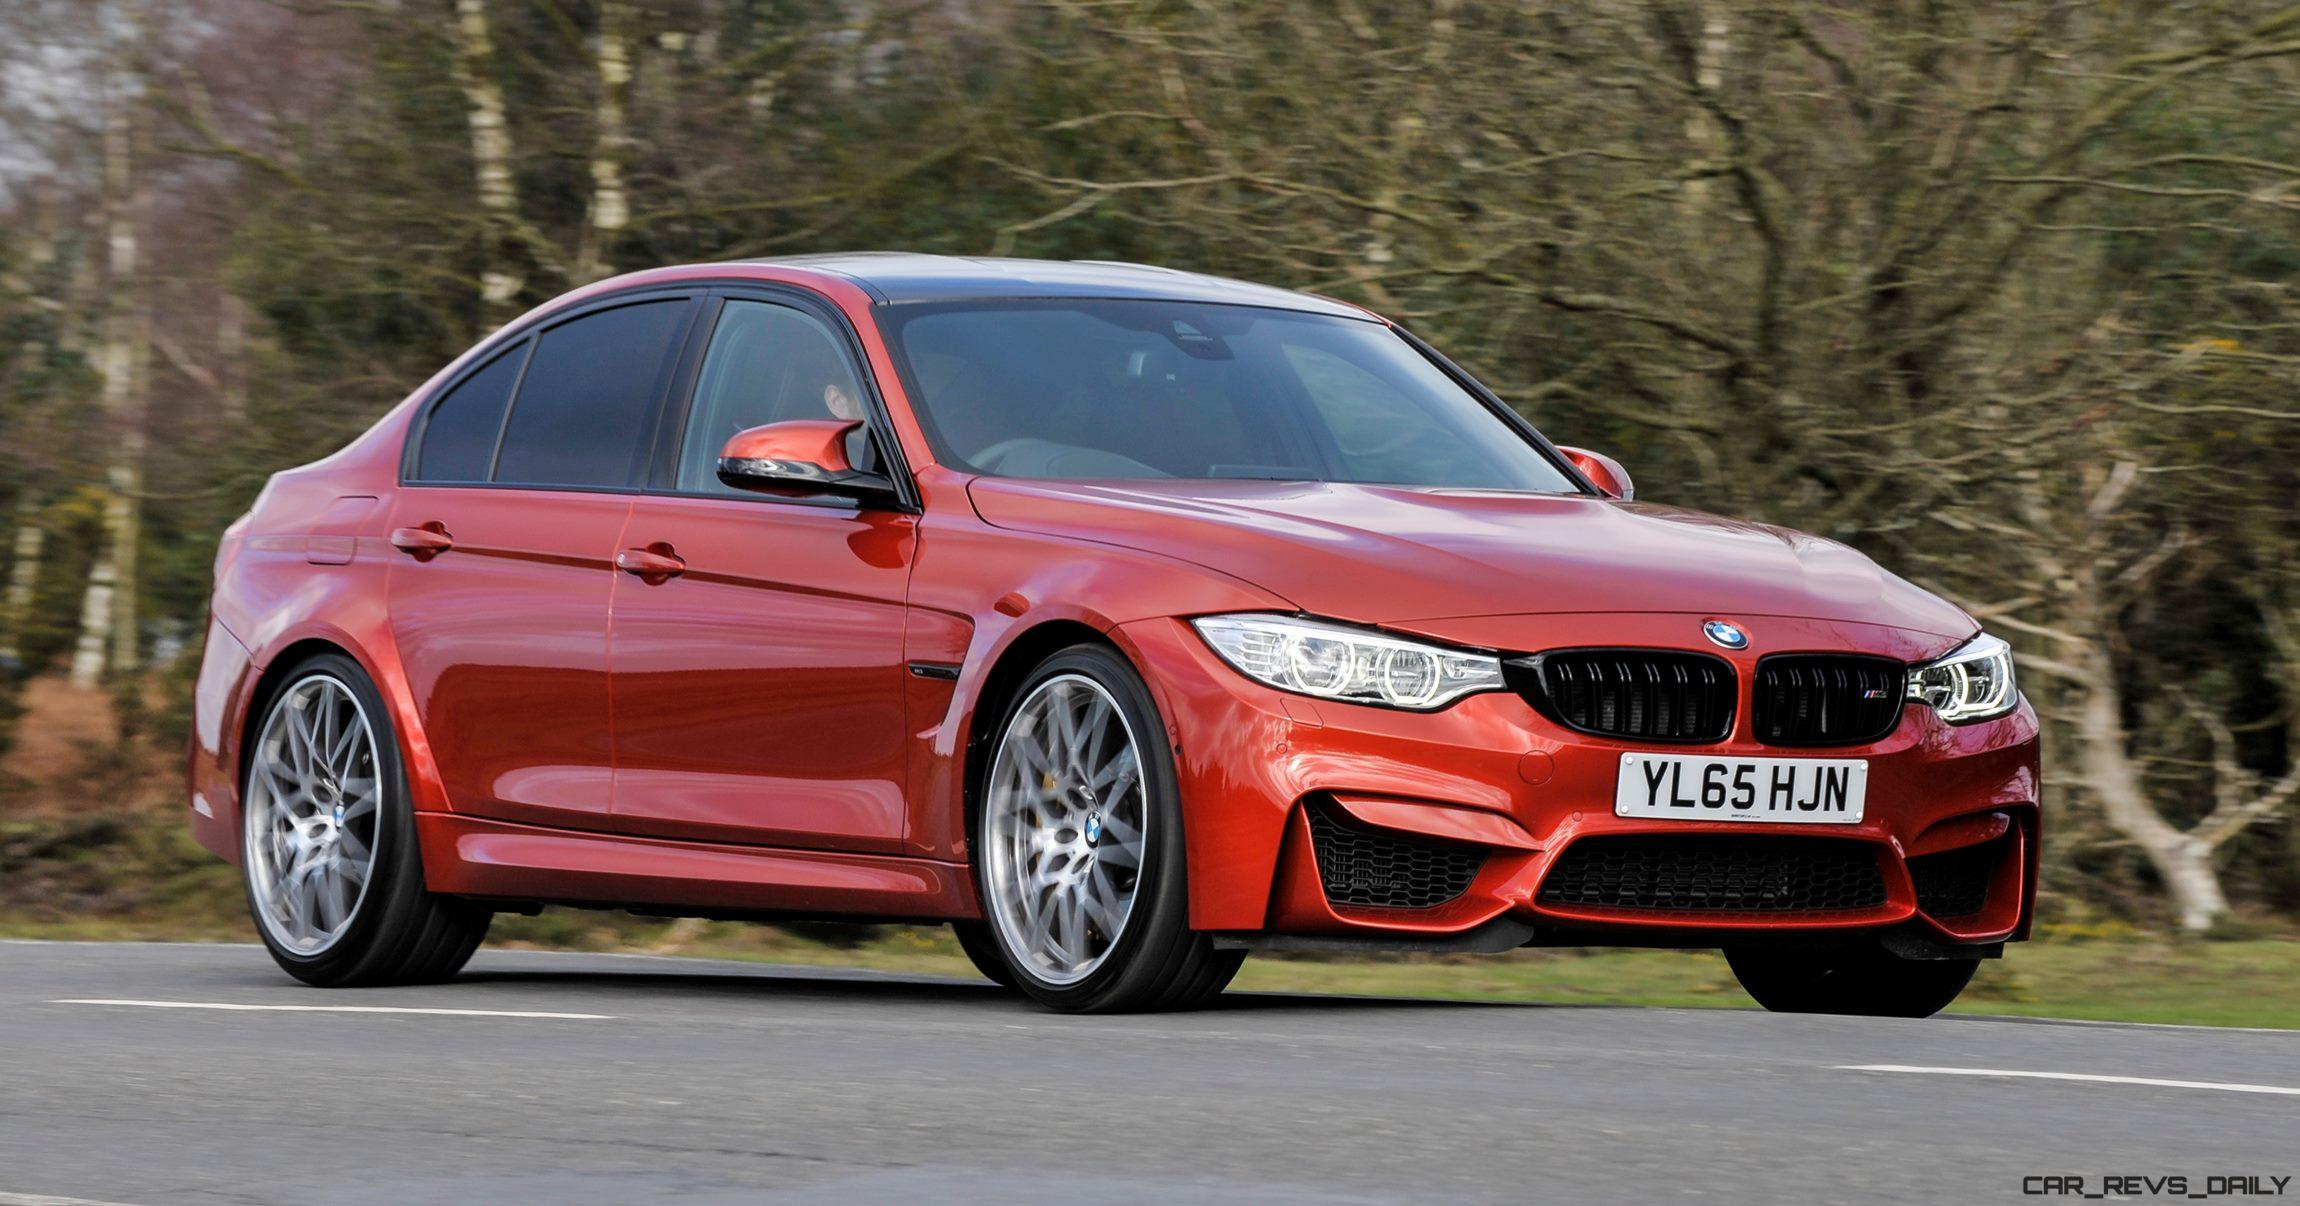 2017 Bmw M3 Saloon Uk Version Photo 1